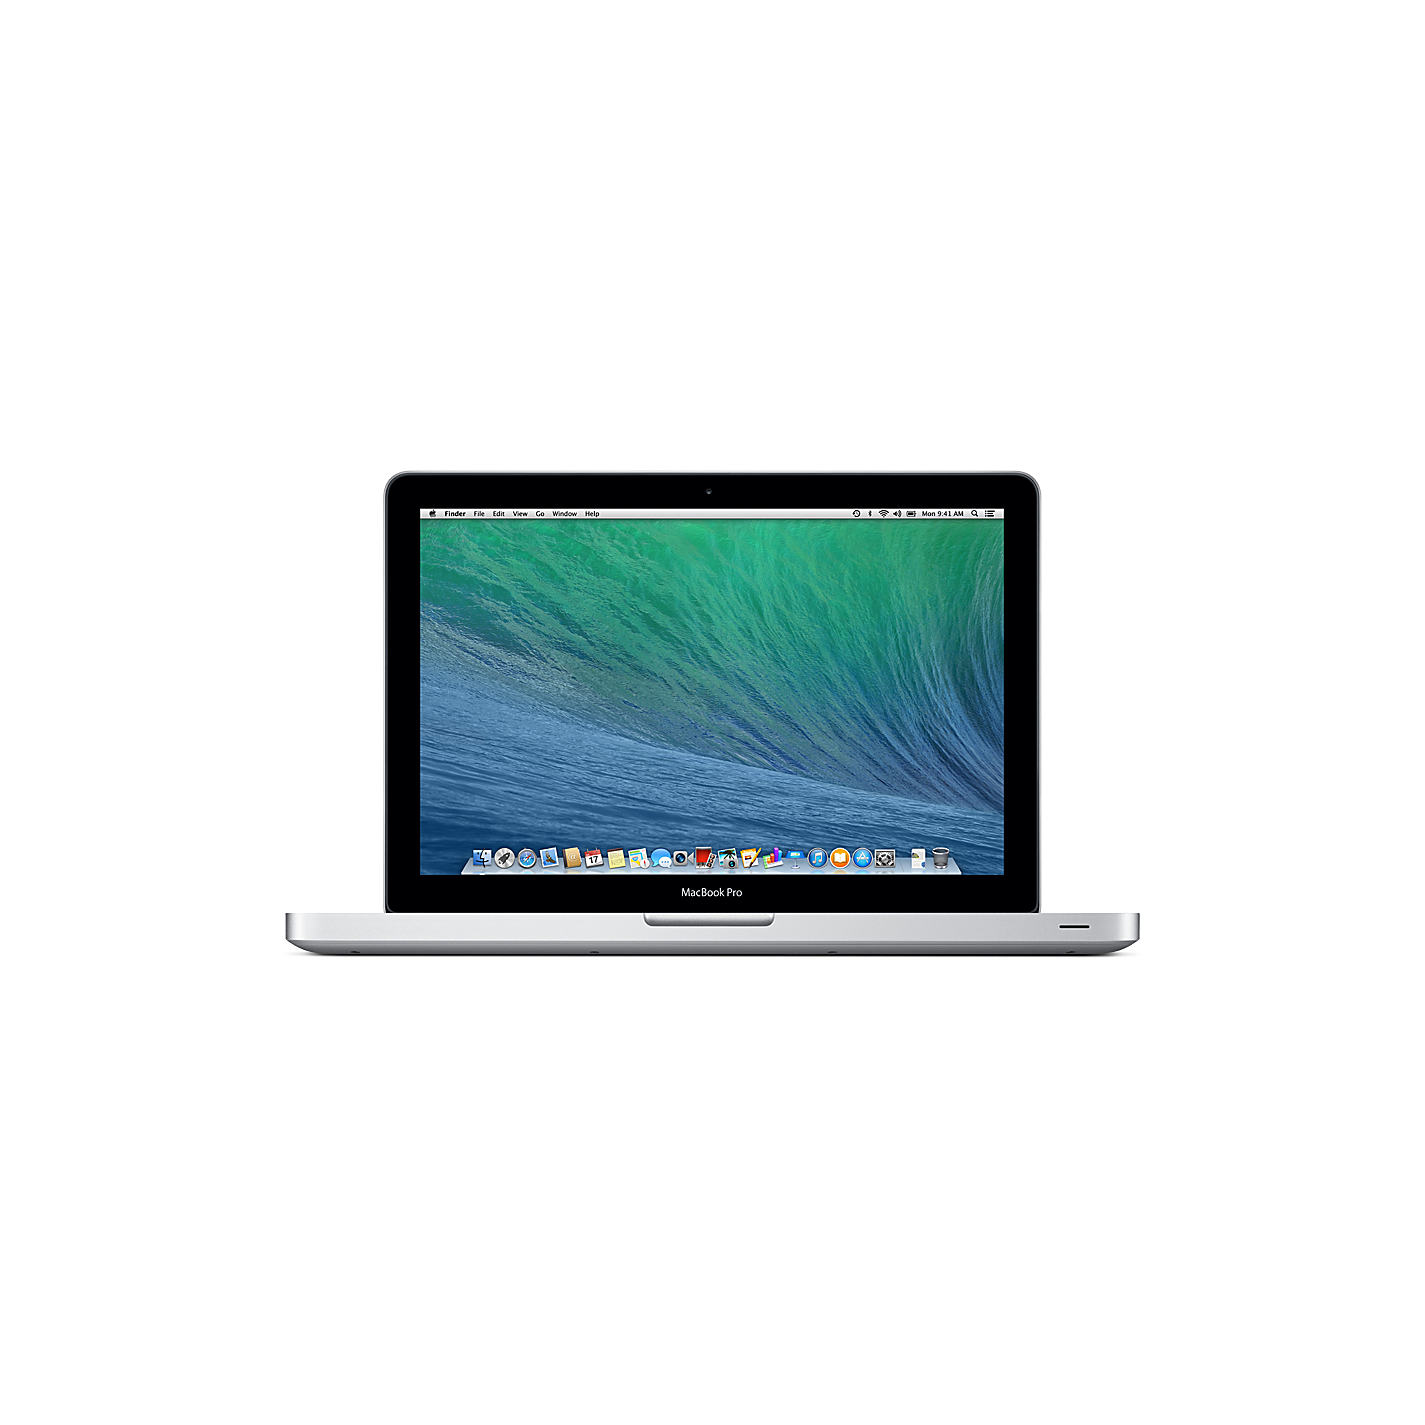 Apple MacBook Pro 15-inch MD322LLA Core i7, 8GB, 500GB HDD